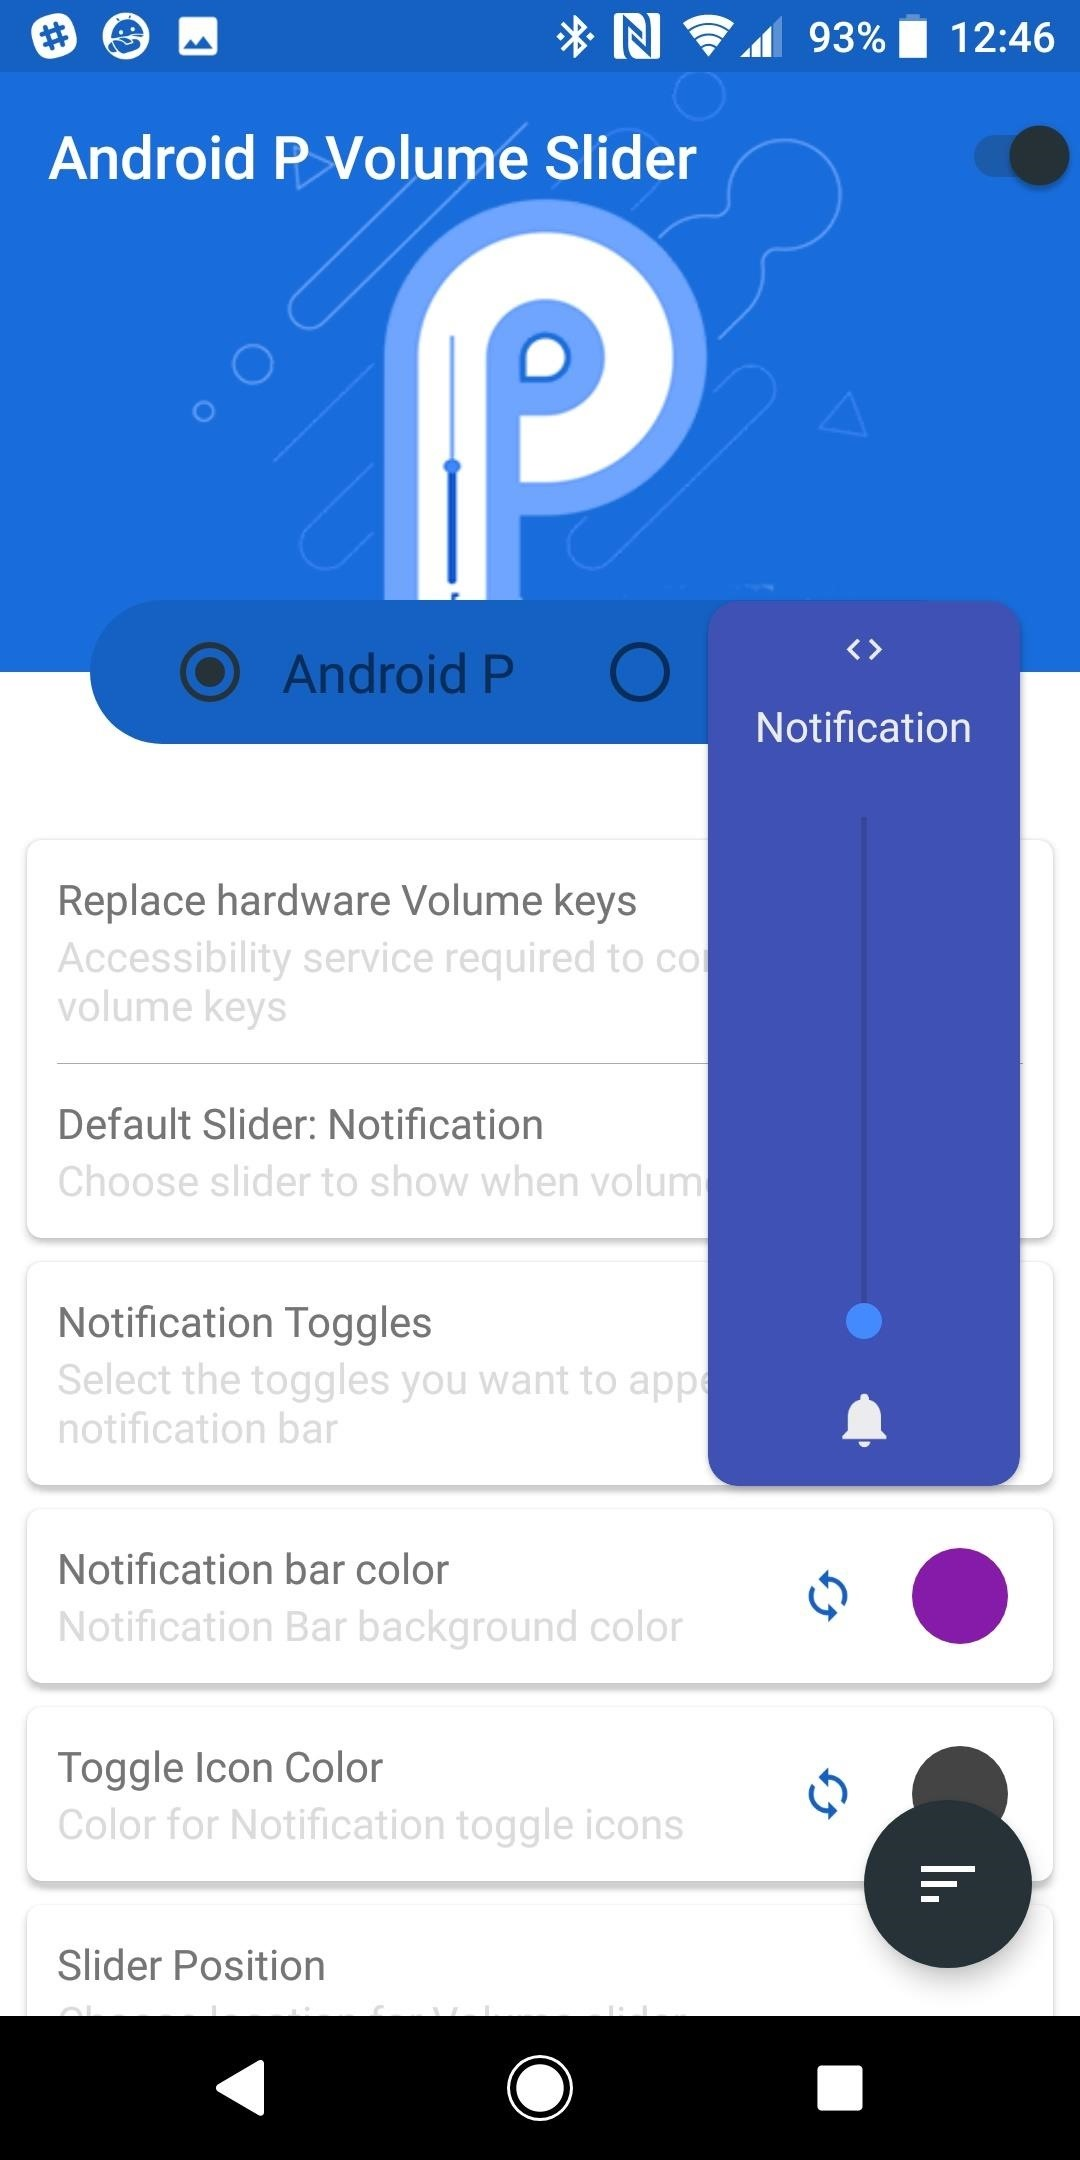 Get Android 9.0 Pie's Volume Slider on Any Phone & Control Media Volume by Default